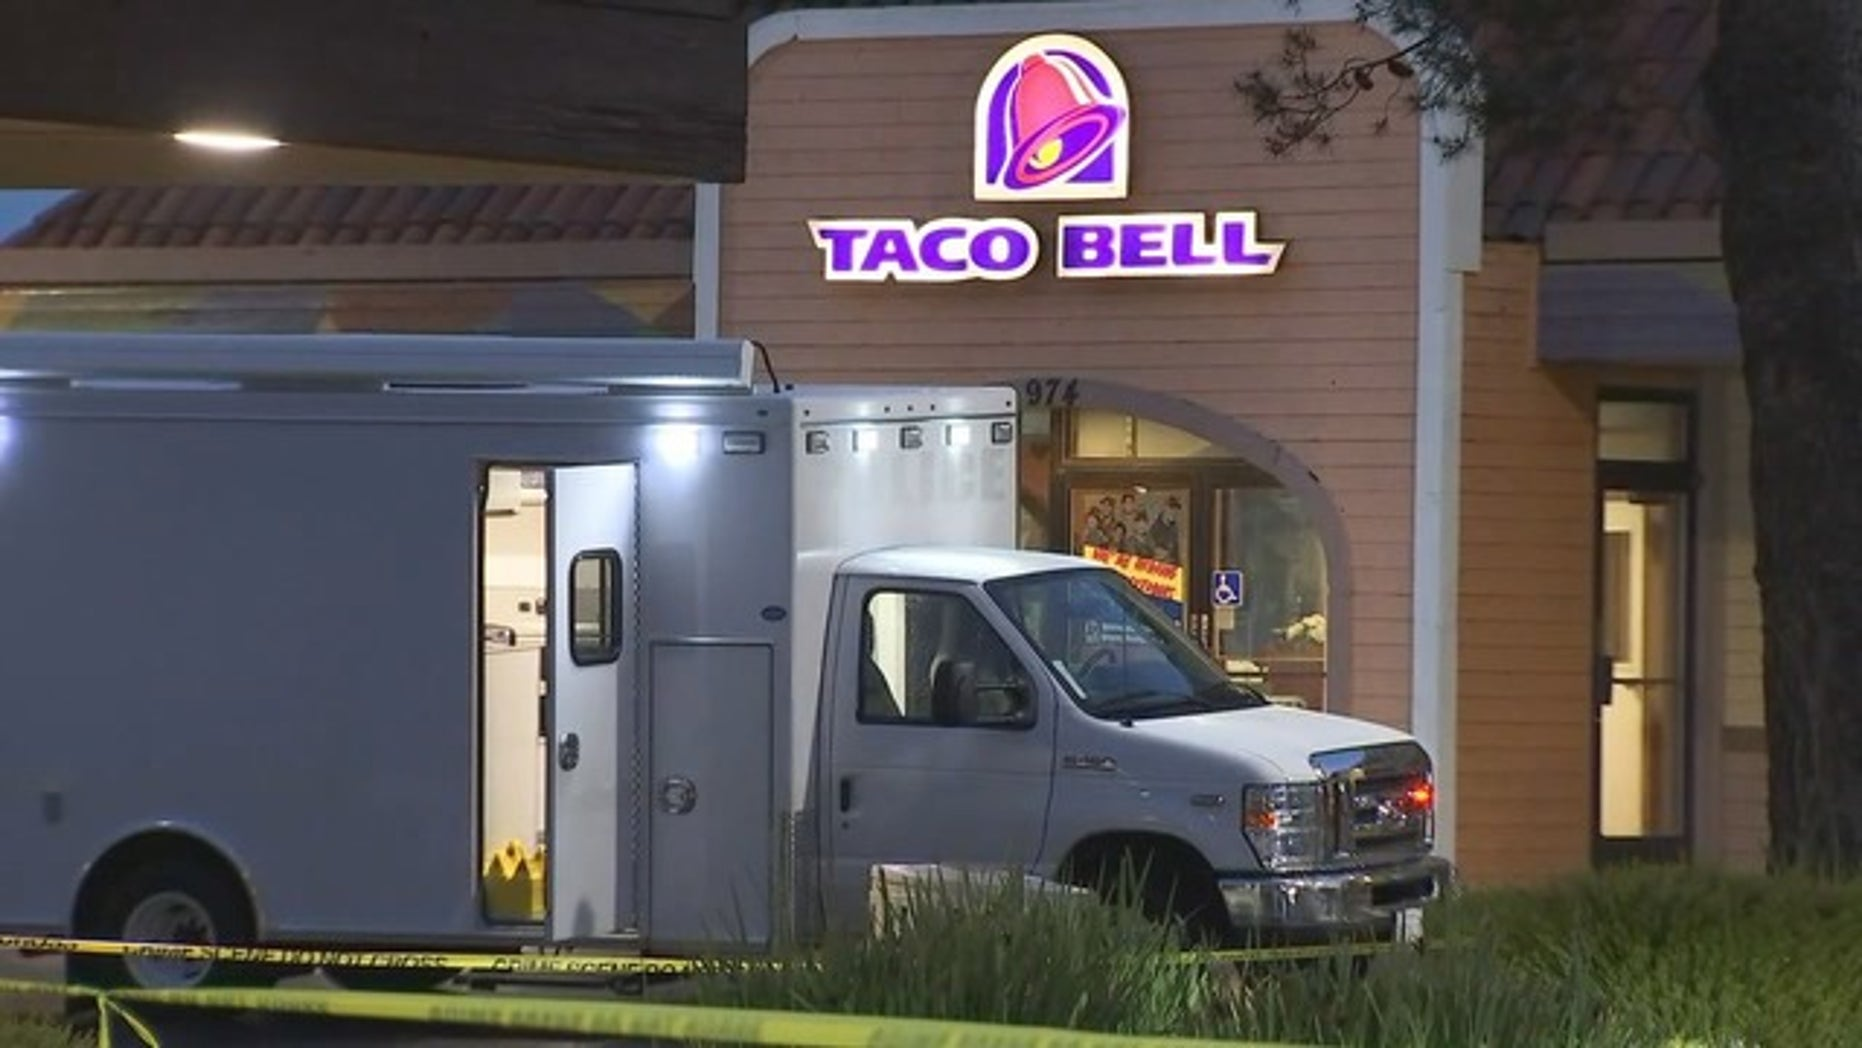 Six US police officers shoot rapper dead in Taco Bell drive-through